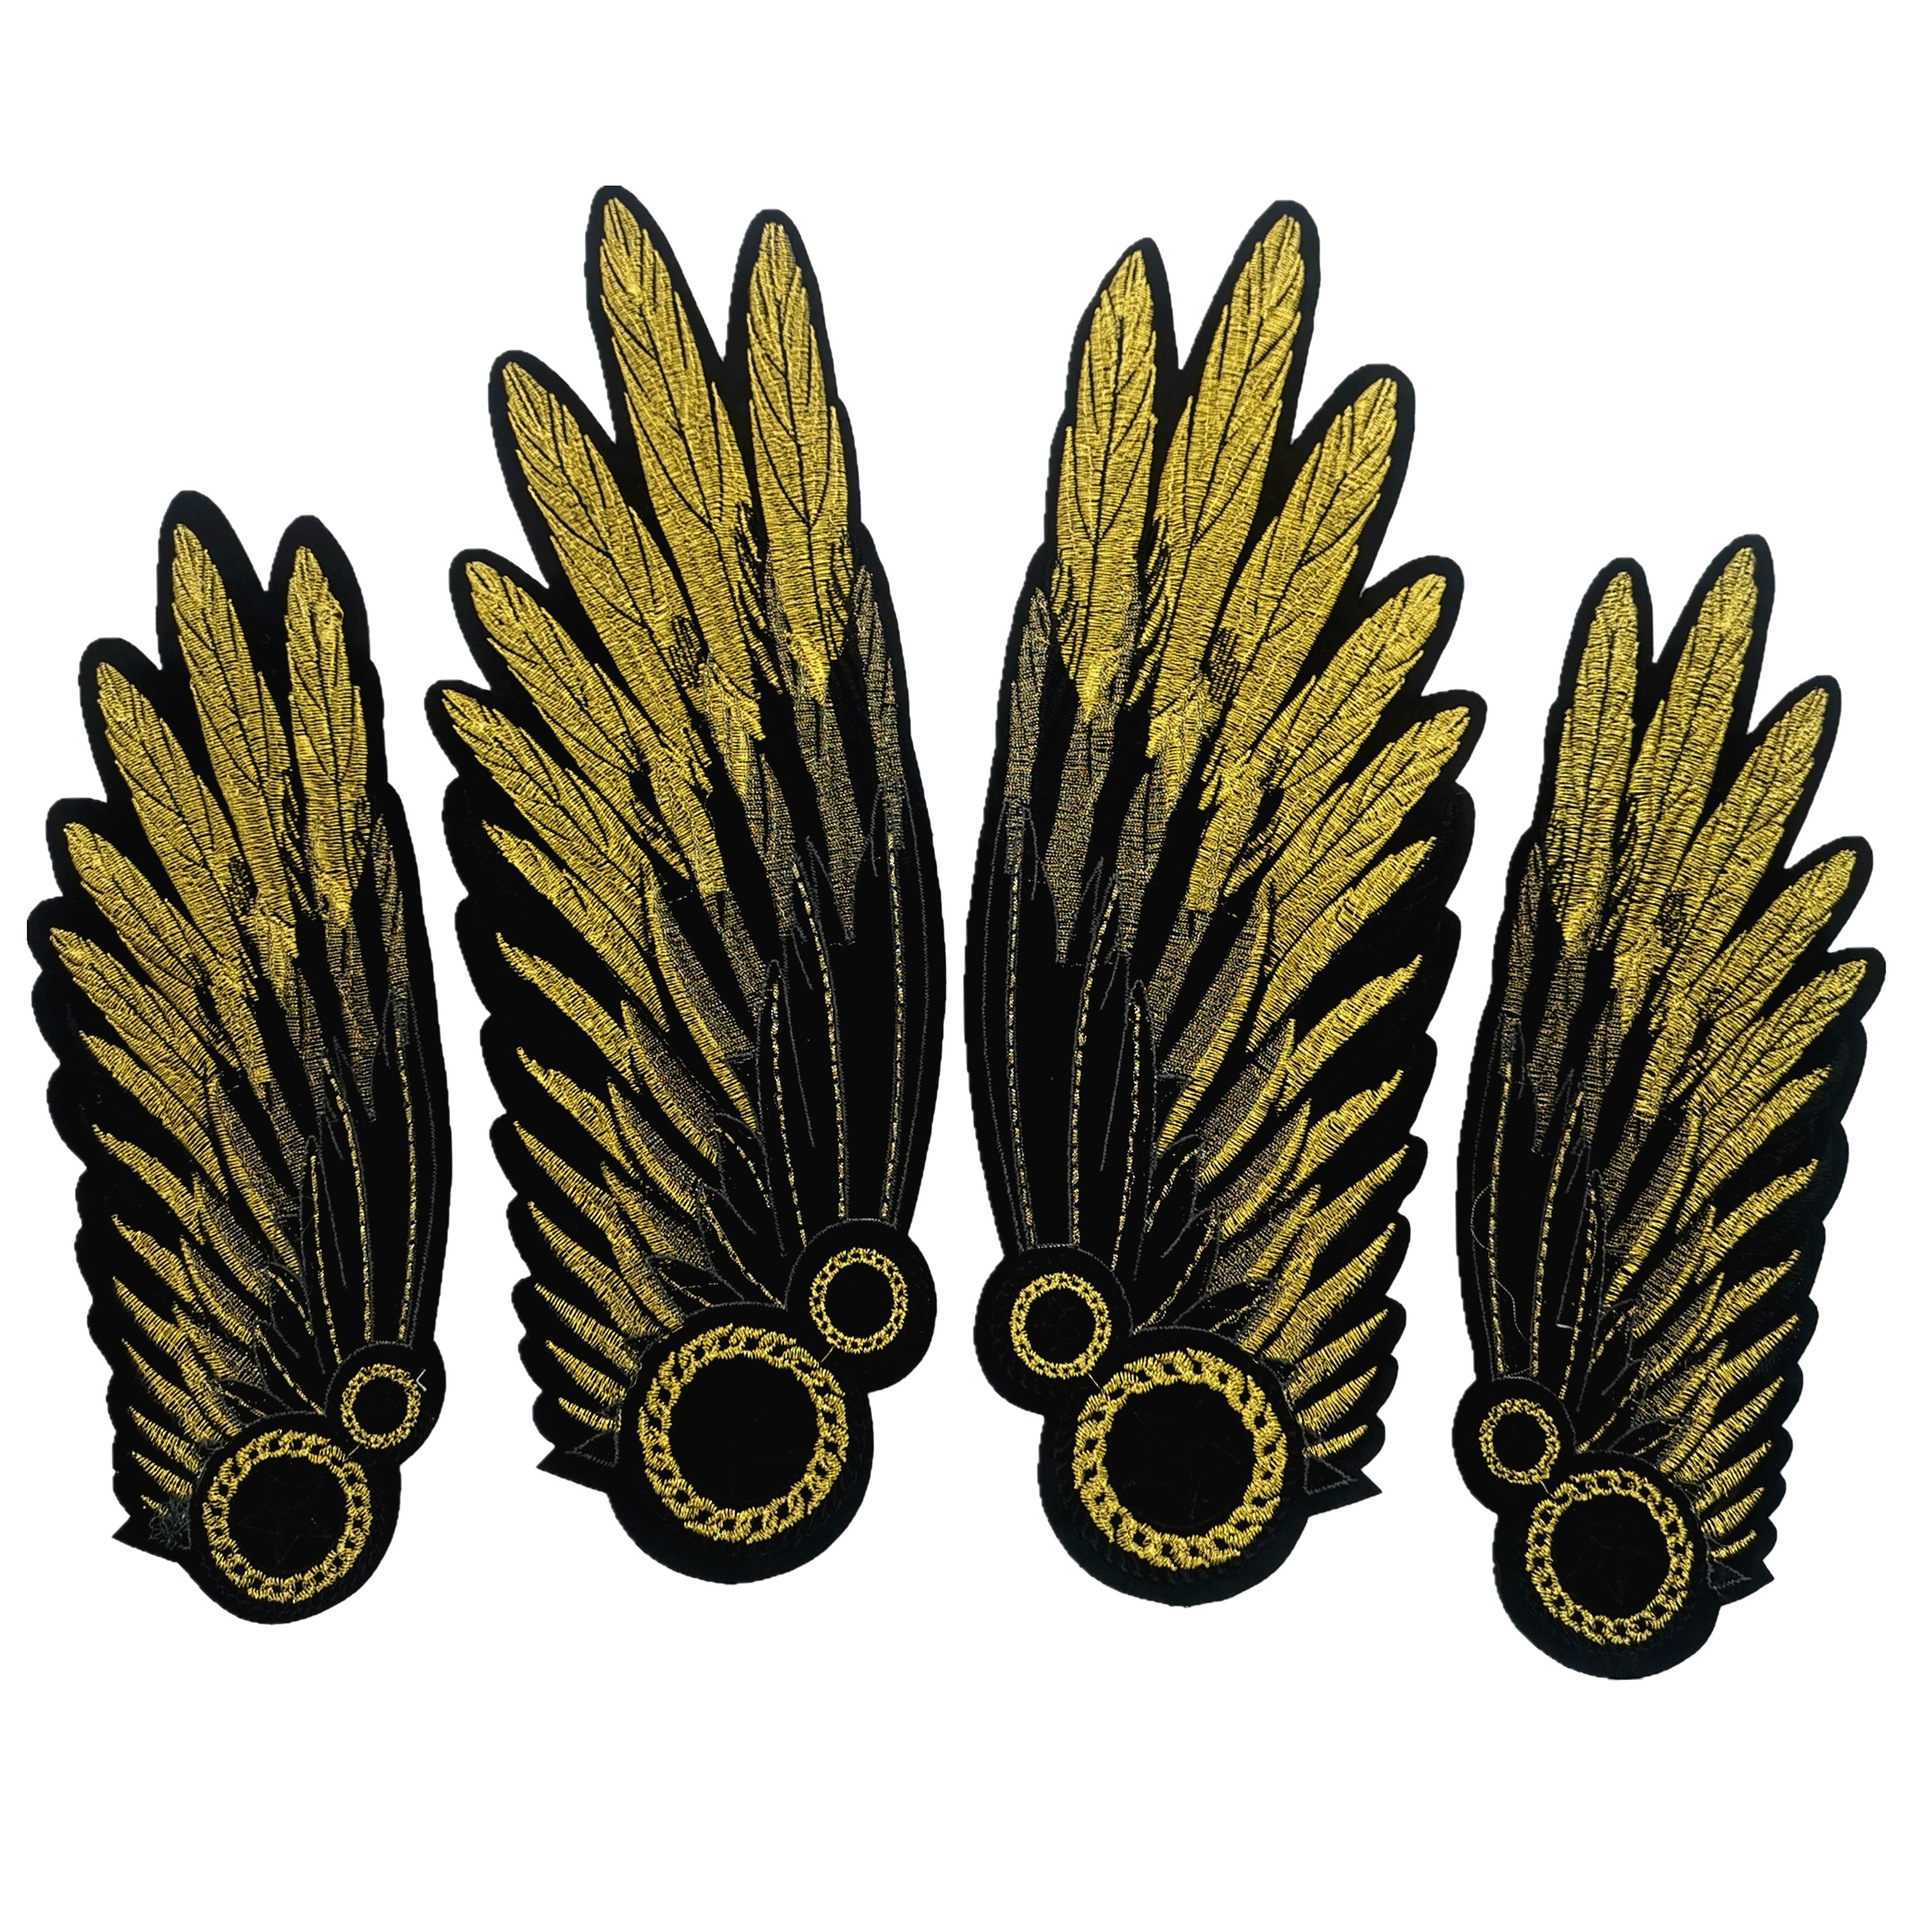 Gold Thread Embroidery European And American Fashion Cloth Clothing Accessories Diy Decorative Patch Applique Wings